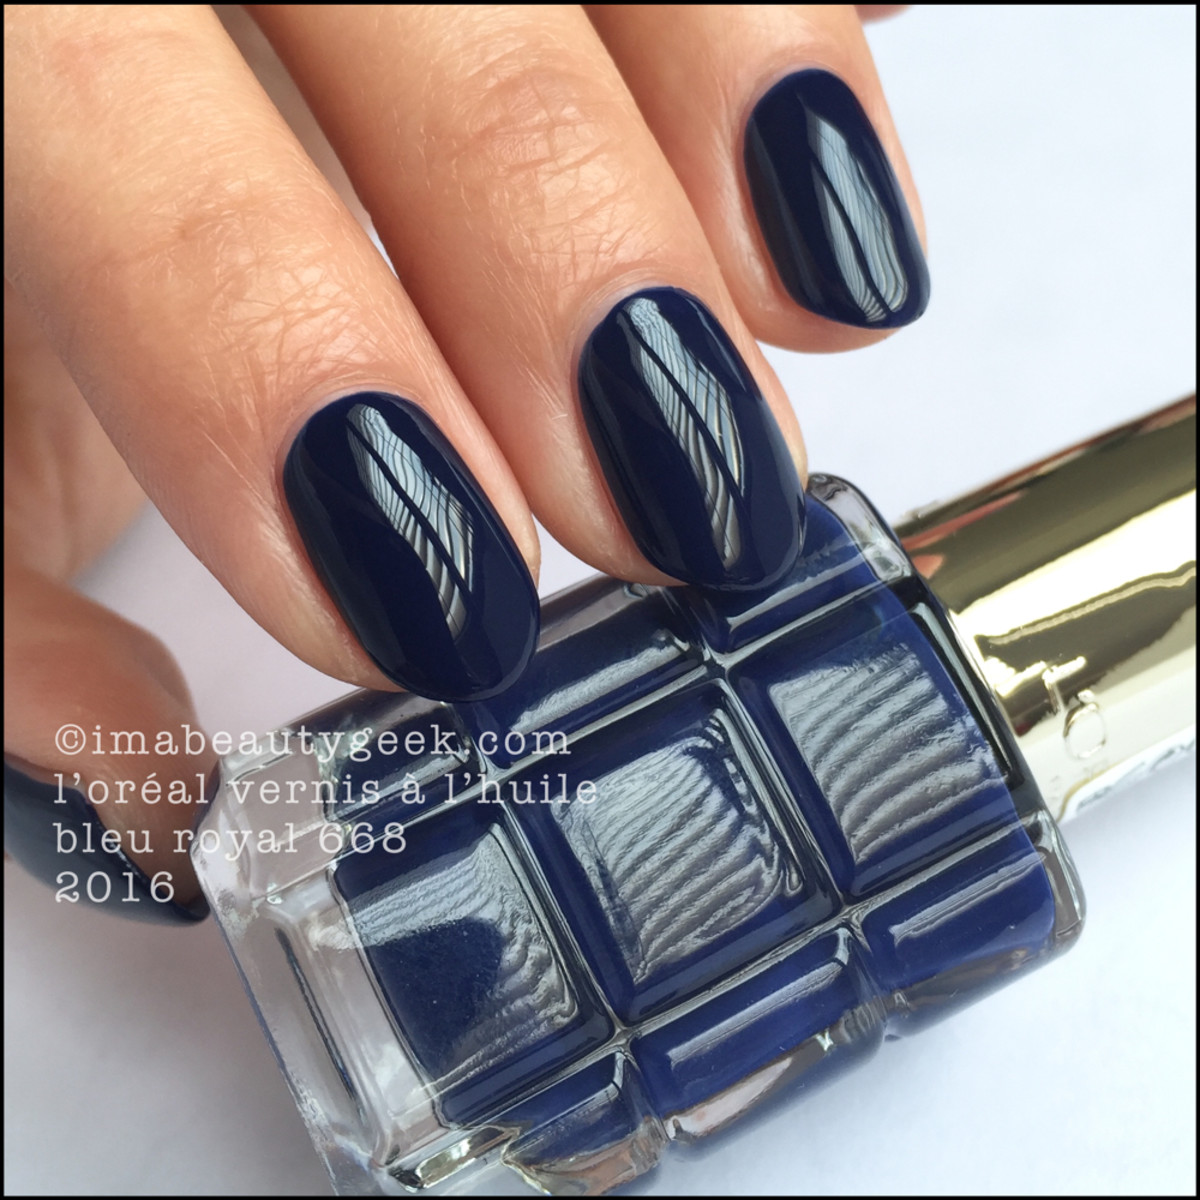 LOreal Vernis a LHuile Nail Polish Swatches_LOreal Bleu Royal 668 Polish